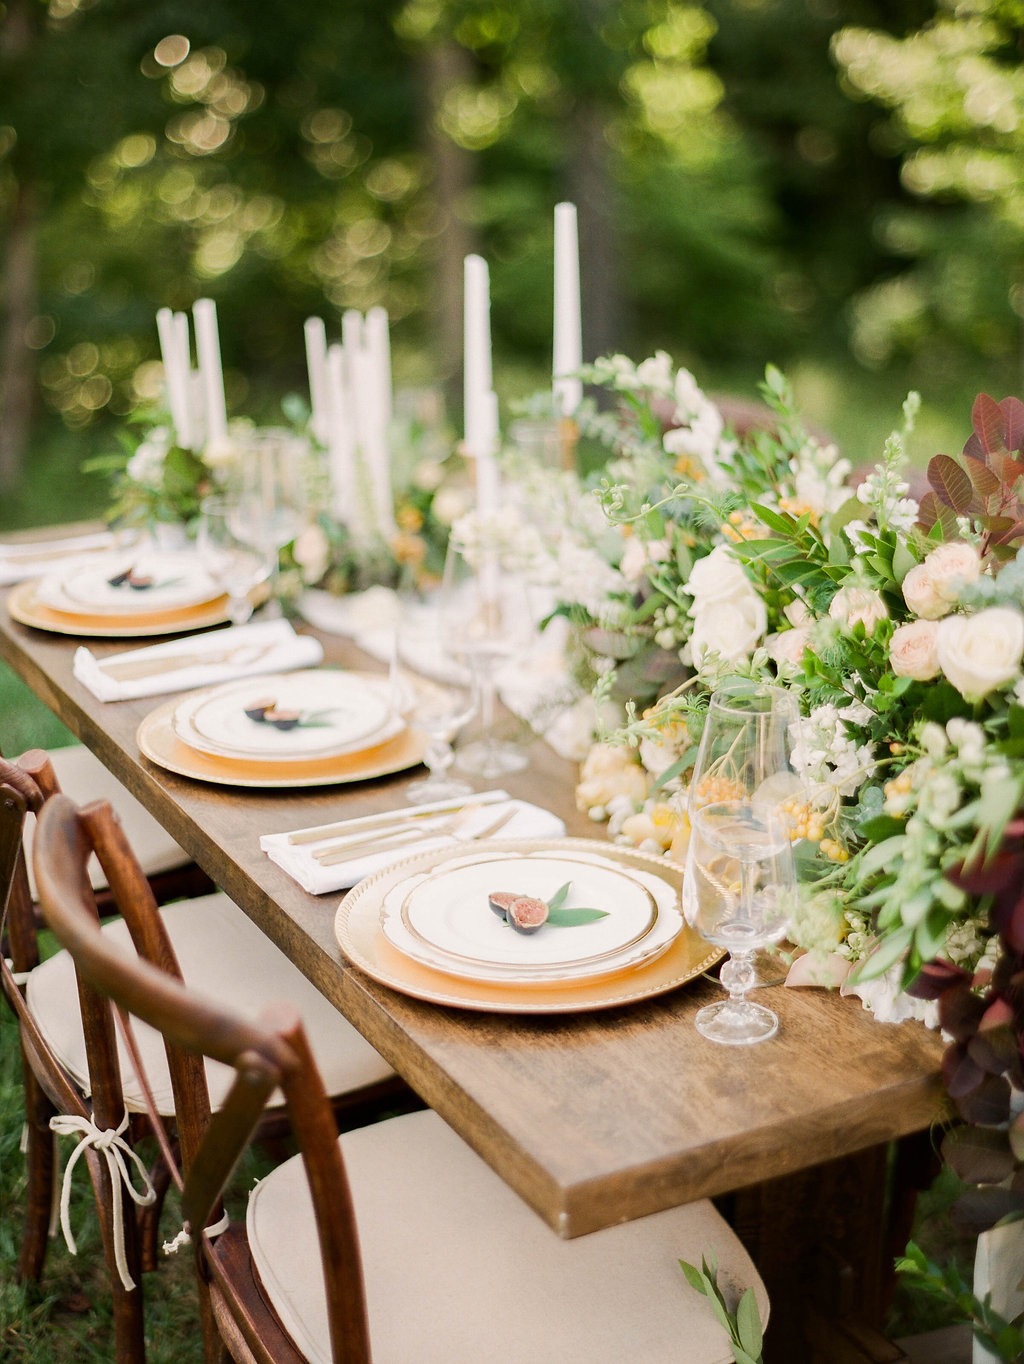 romantic tablescapes - photo by Shannon Duggan Photography http://ruffledblog.com/elegant-chateau-wedding-inspiration-in-st-louis